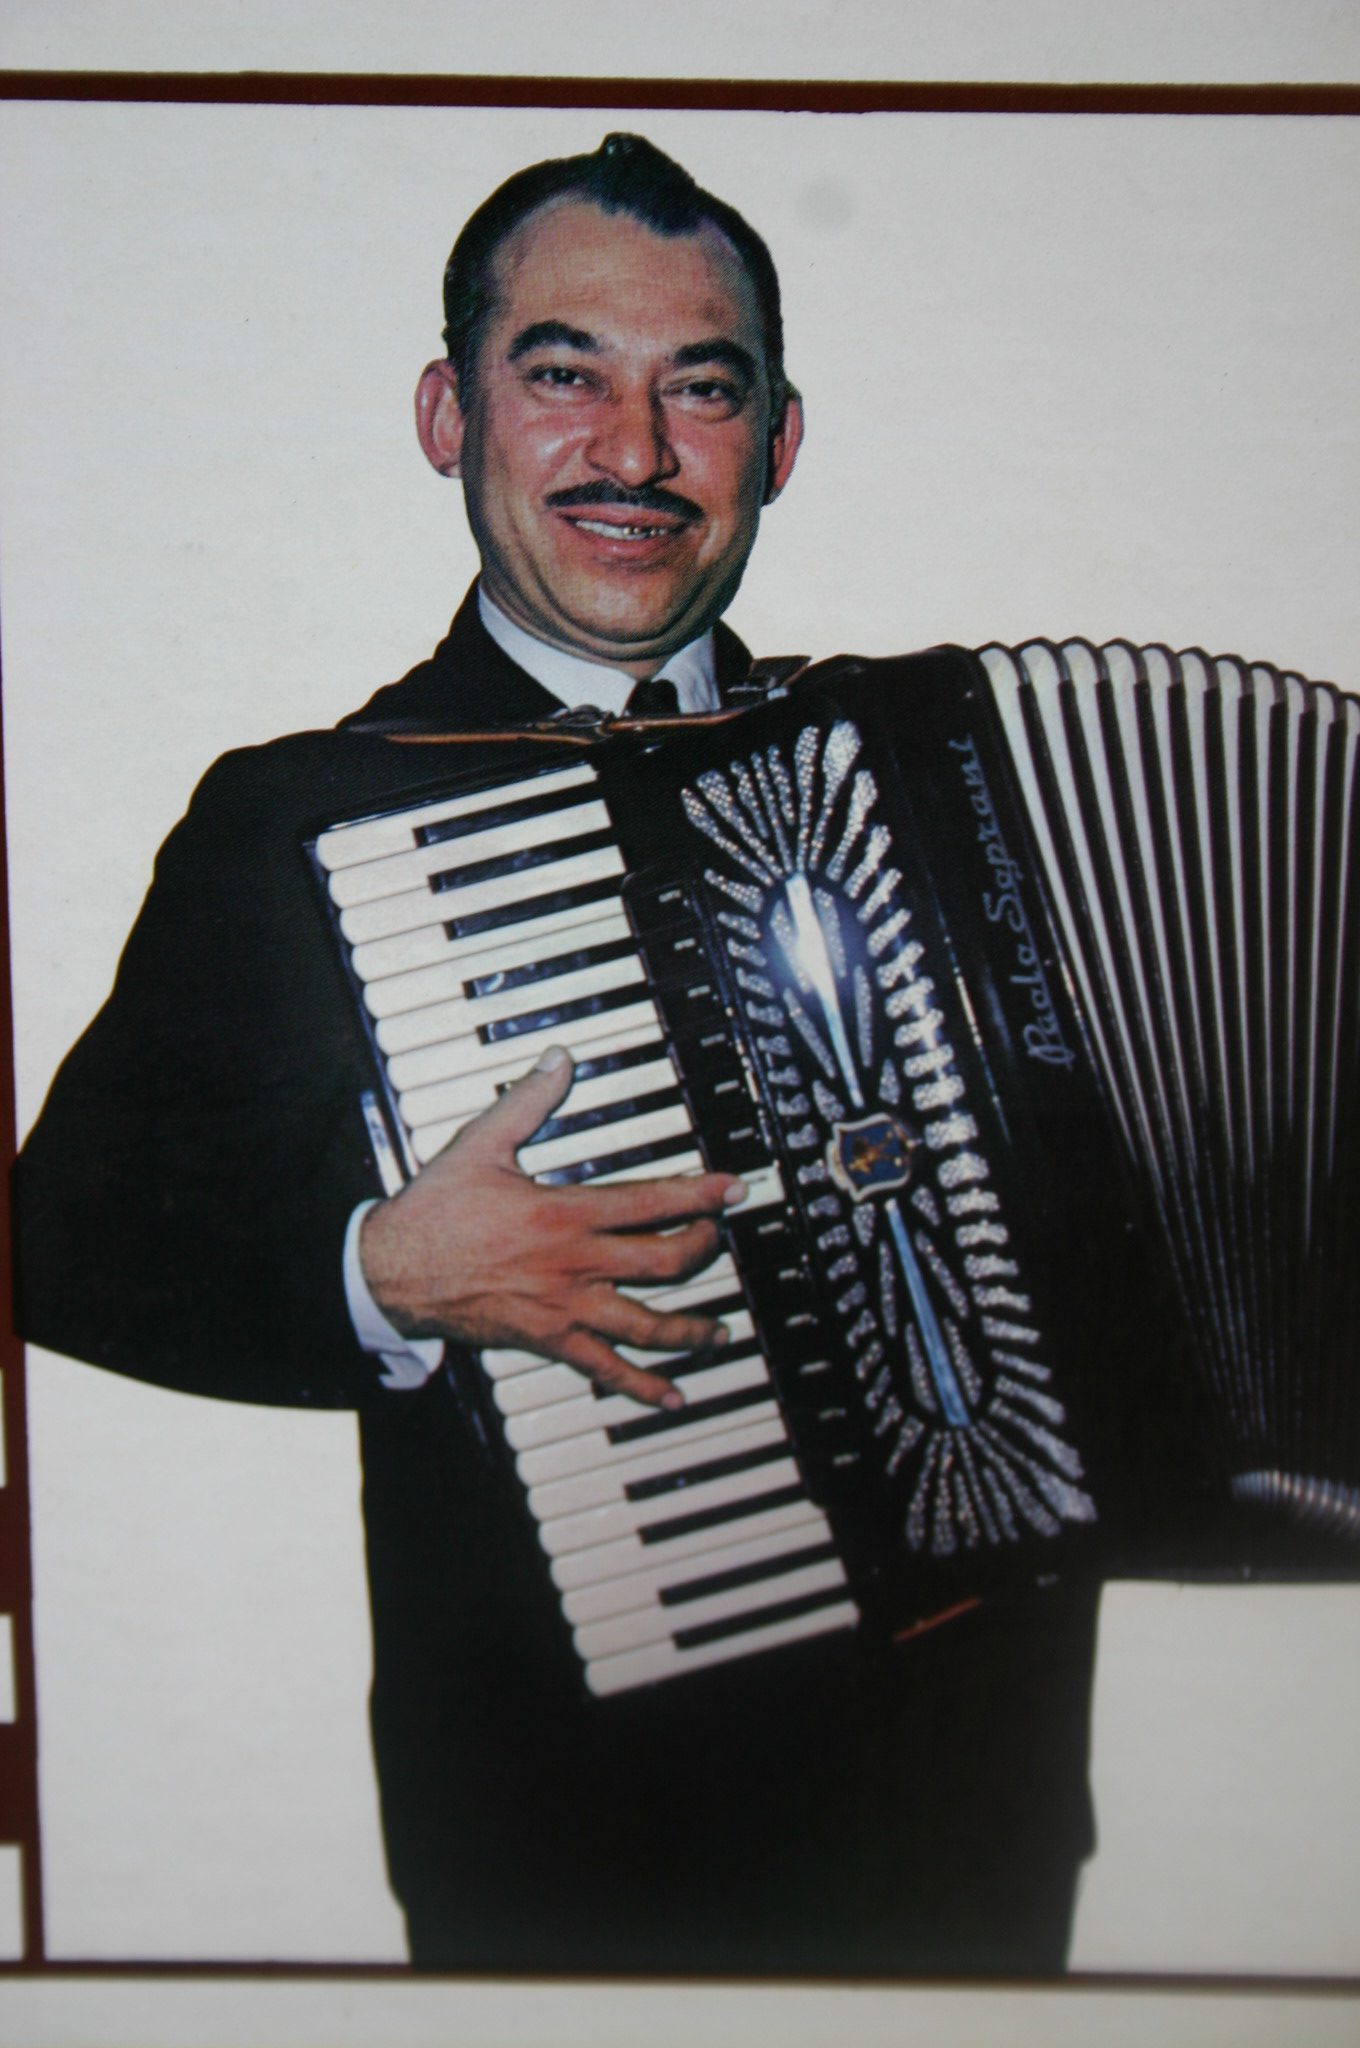 Agapito Zuniga with key accordion